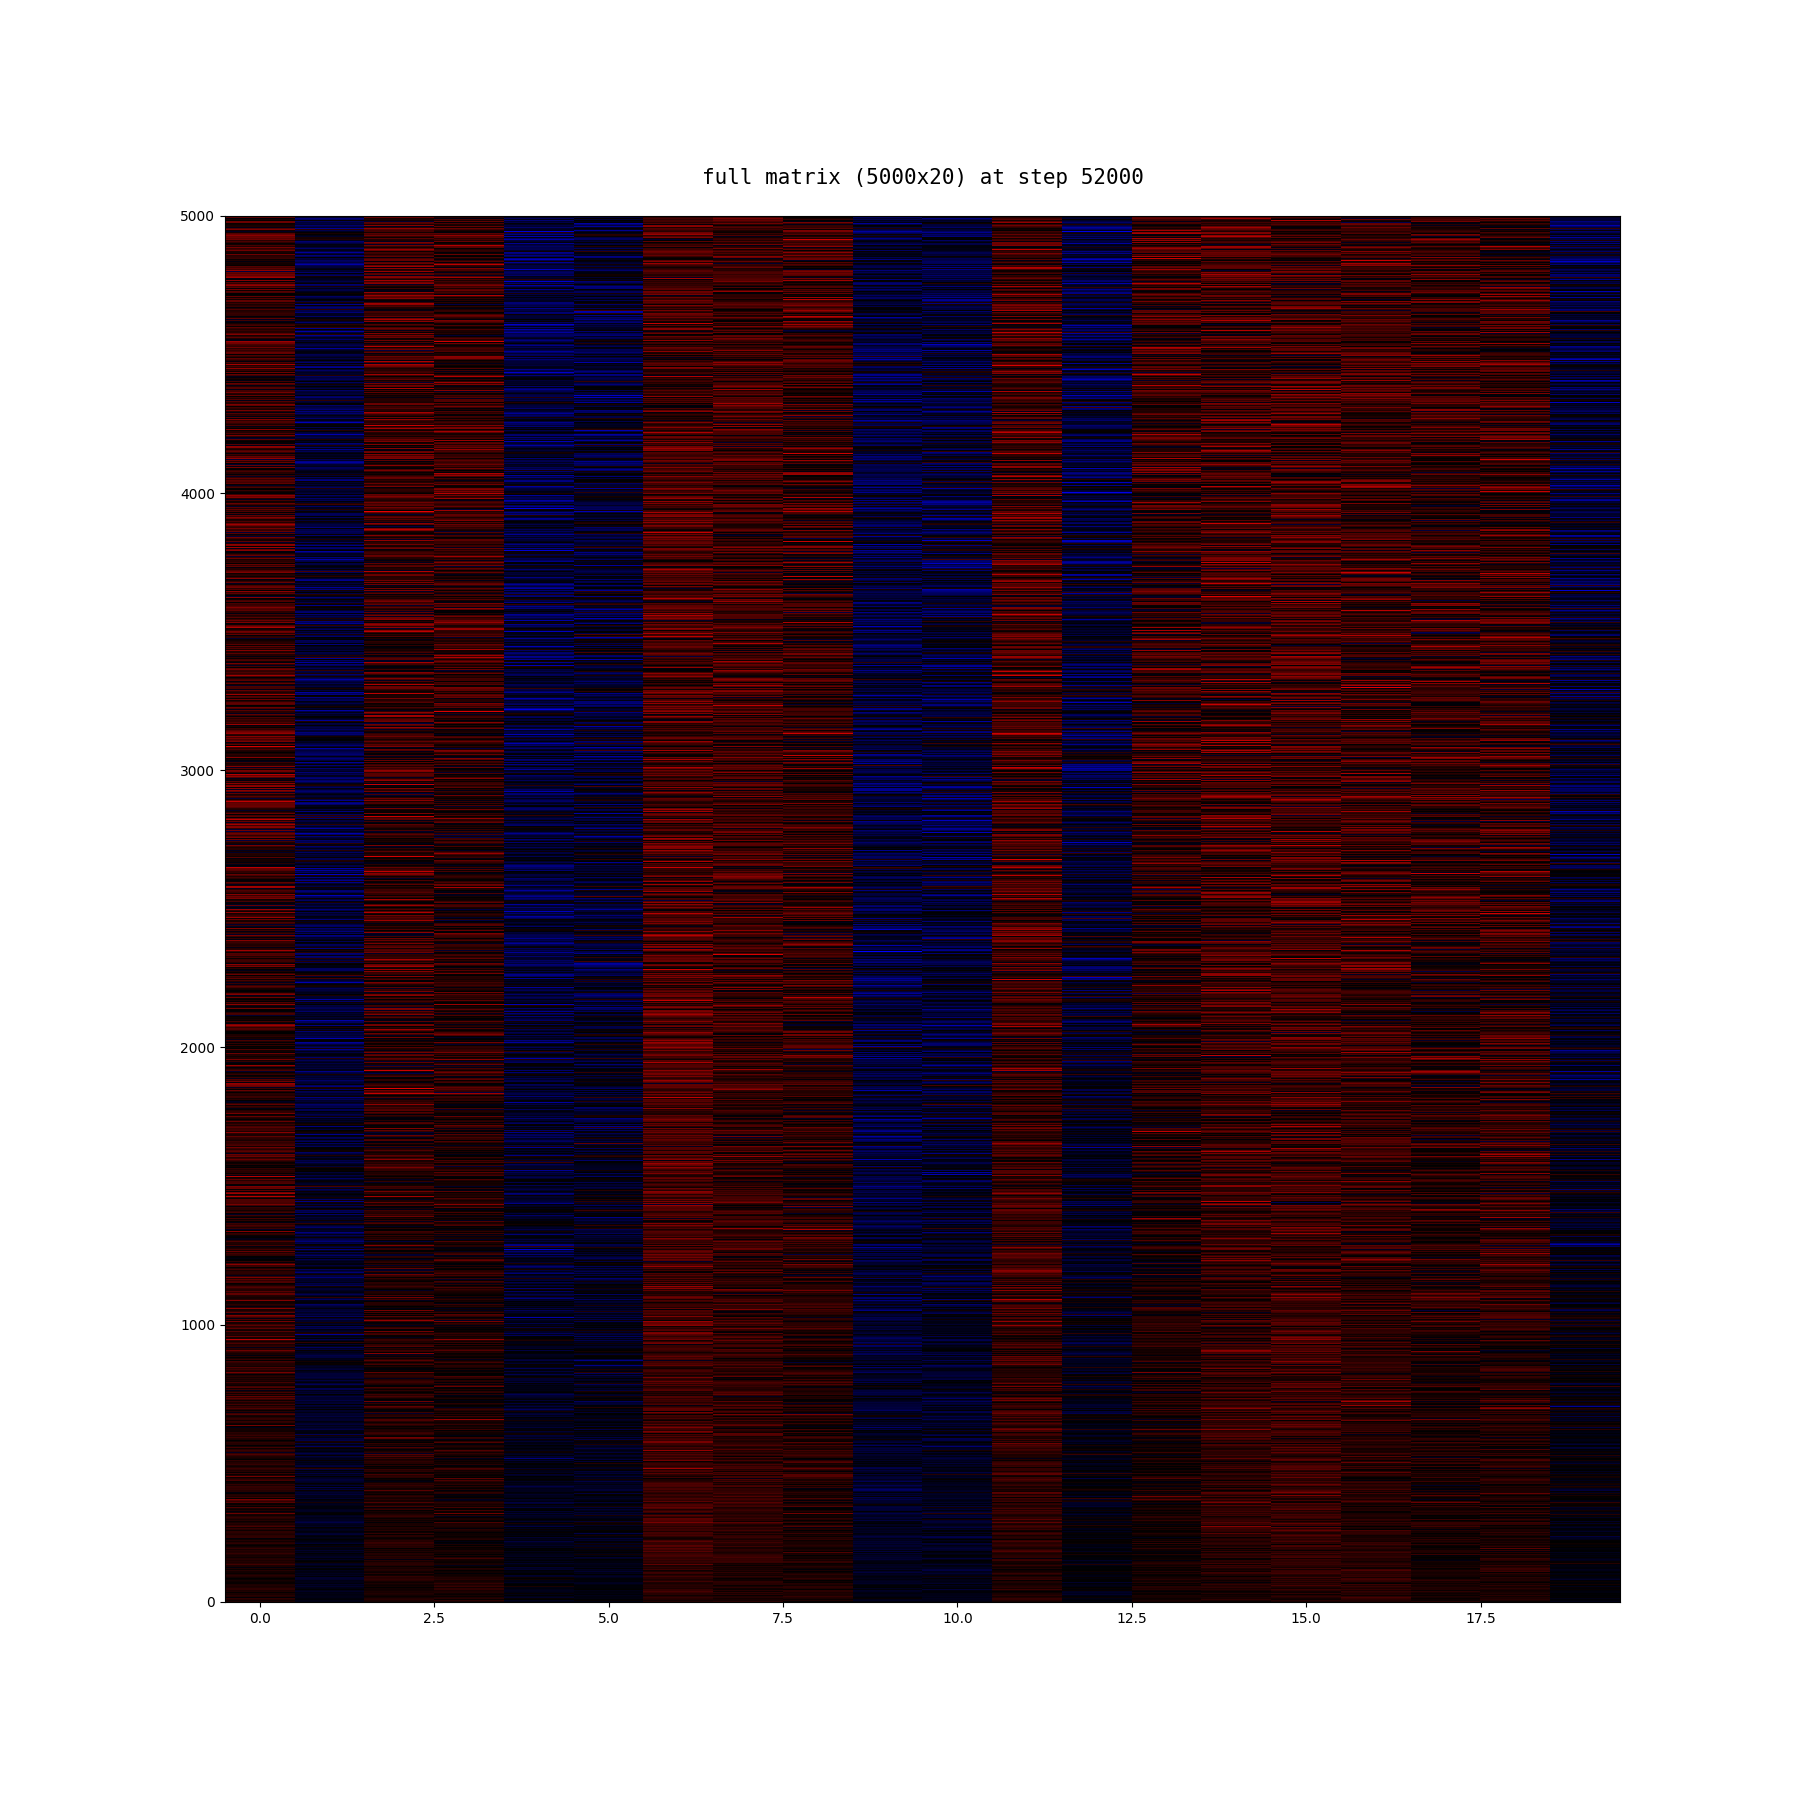 algoliterary_encounter/word2vec/plots/full-matrix/frankenstein-full-matrix-at-step_52000.png